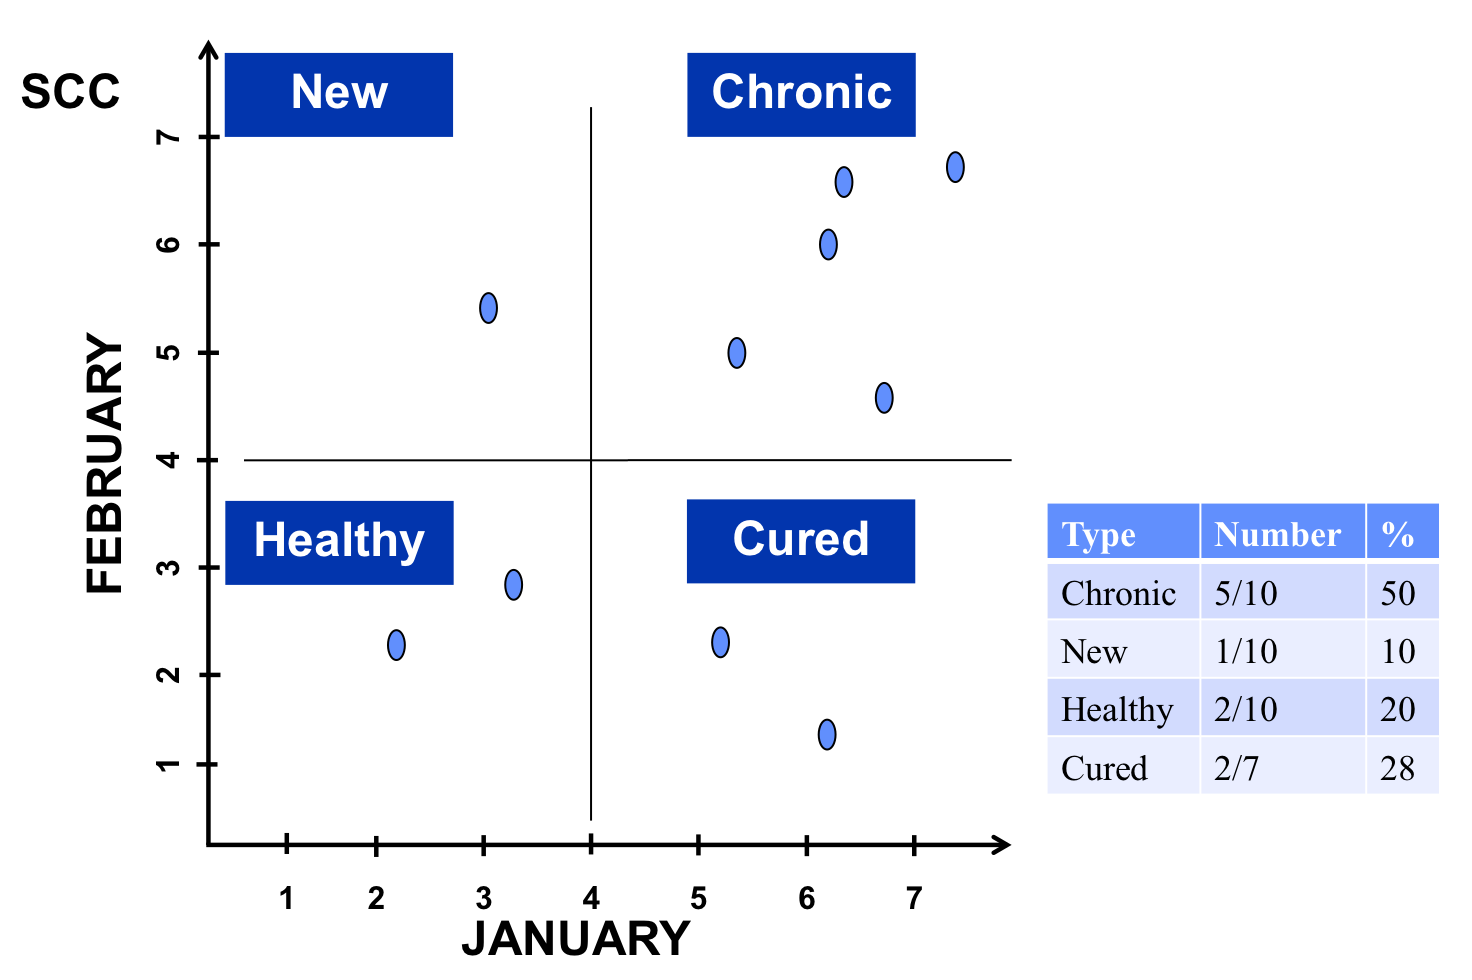 Graph of somatic cell count (linear score) of cows for this month and previous month, divided into quadrants for new mastitis cases, chronic cases, healthy cows, and cured cows.